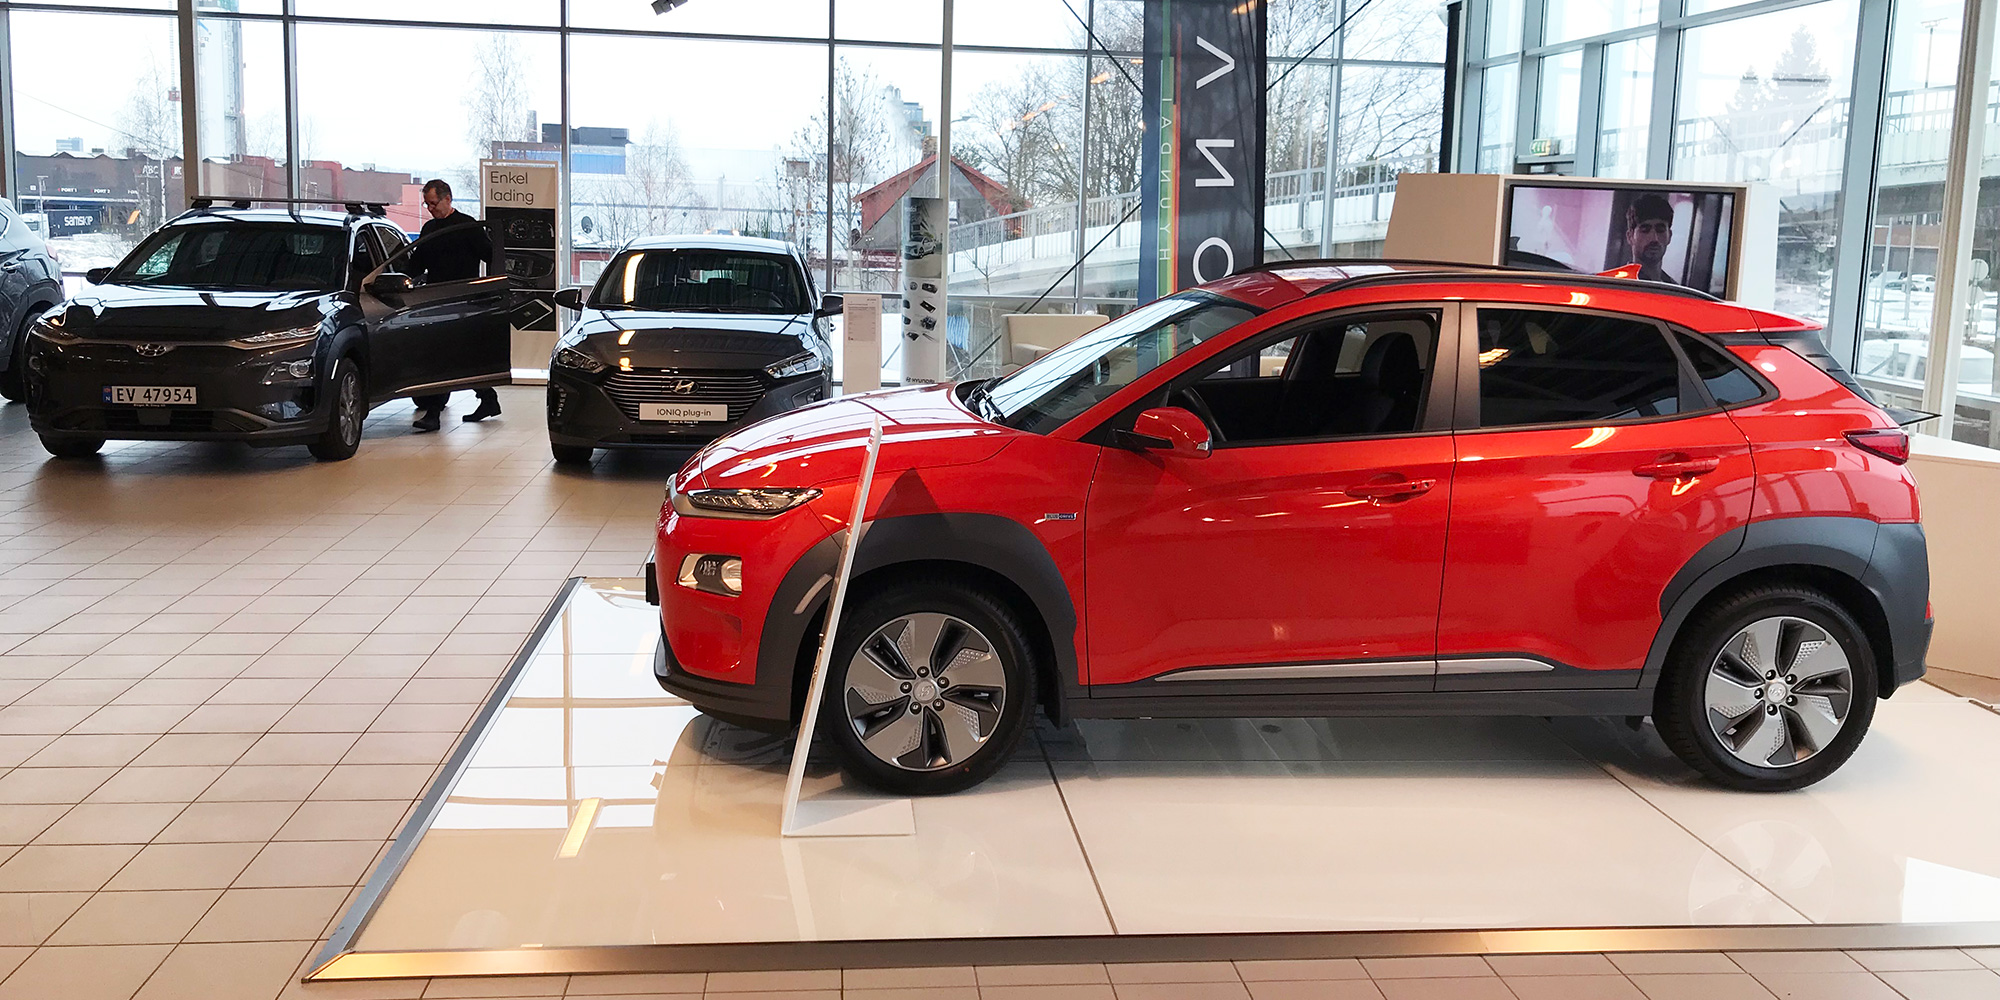 the Birger N. Haug Nissan dealership in Oslo is a big seller of Nissan LEAFs and Kona EVs